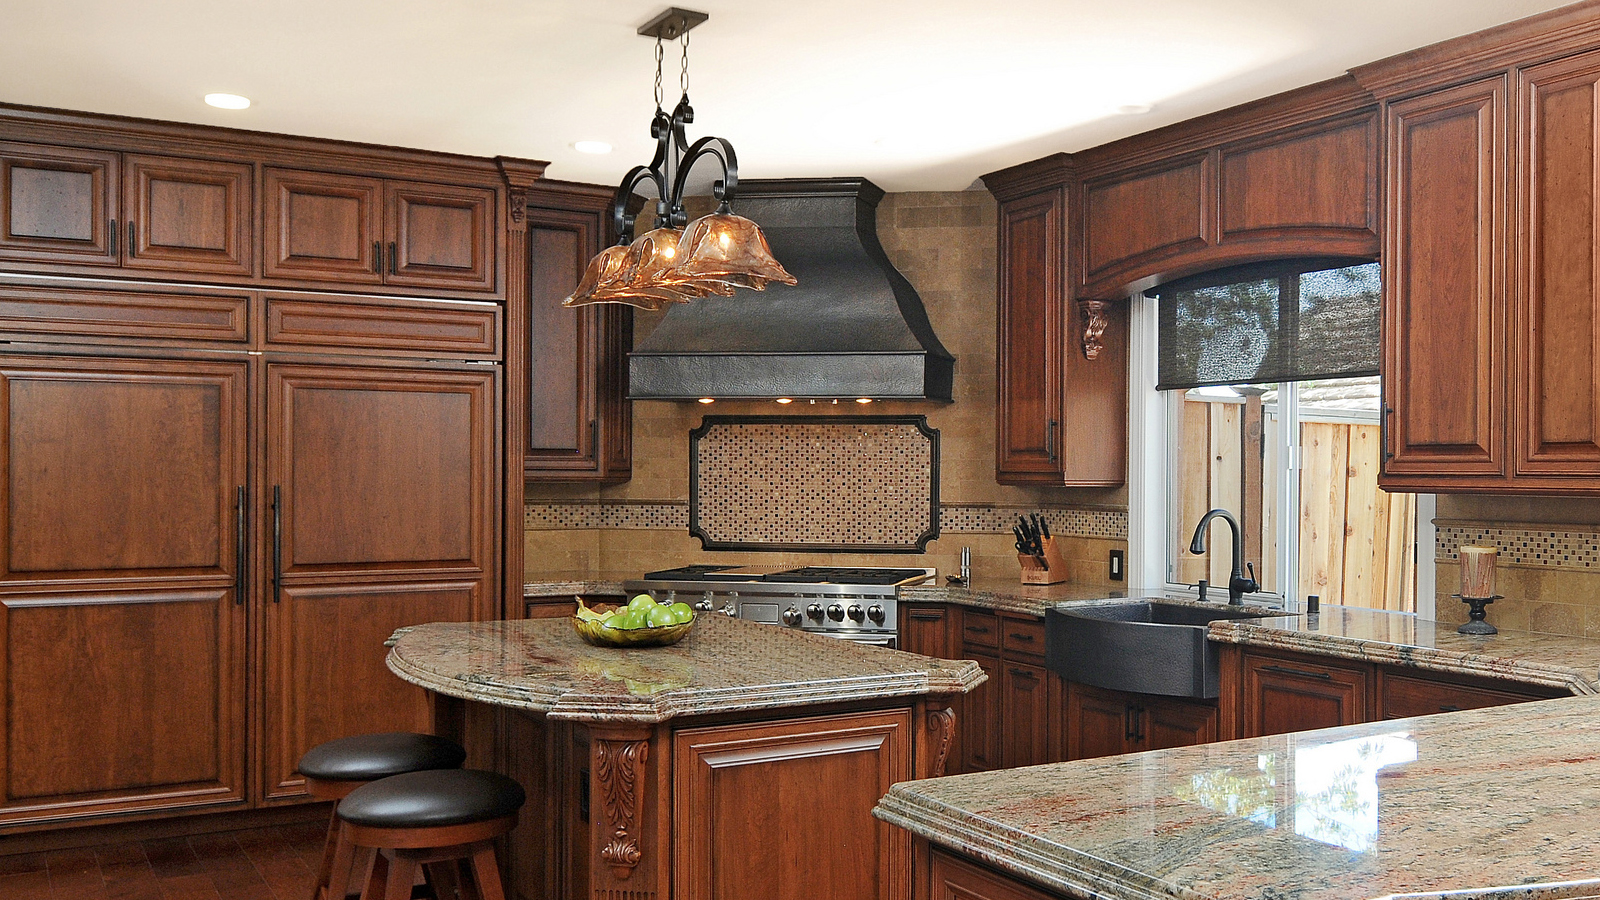 remodelwest silver creek san jose kitchen remodel